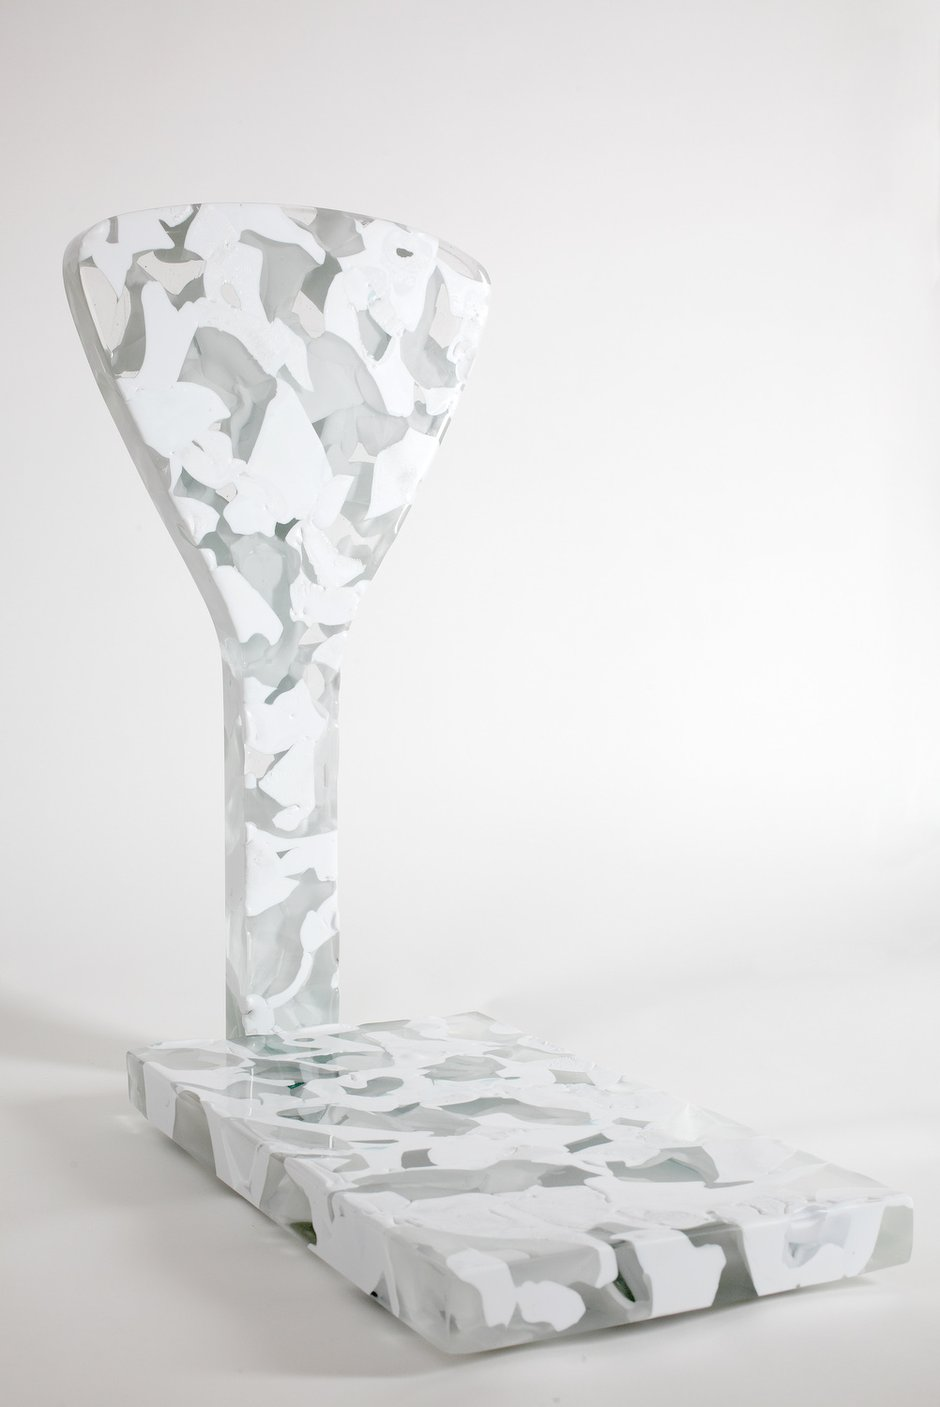 Emma Woffenden: Meltdown, 2011. dimensions 72x67x33 cms. Photo by Jon Spaul.